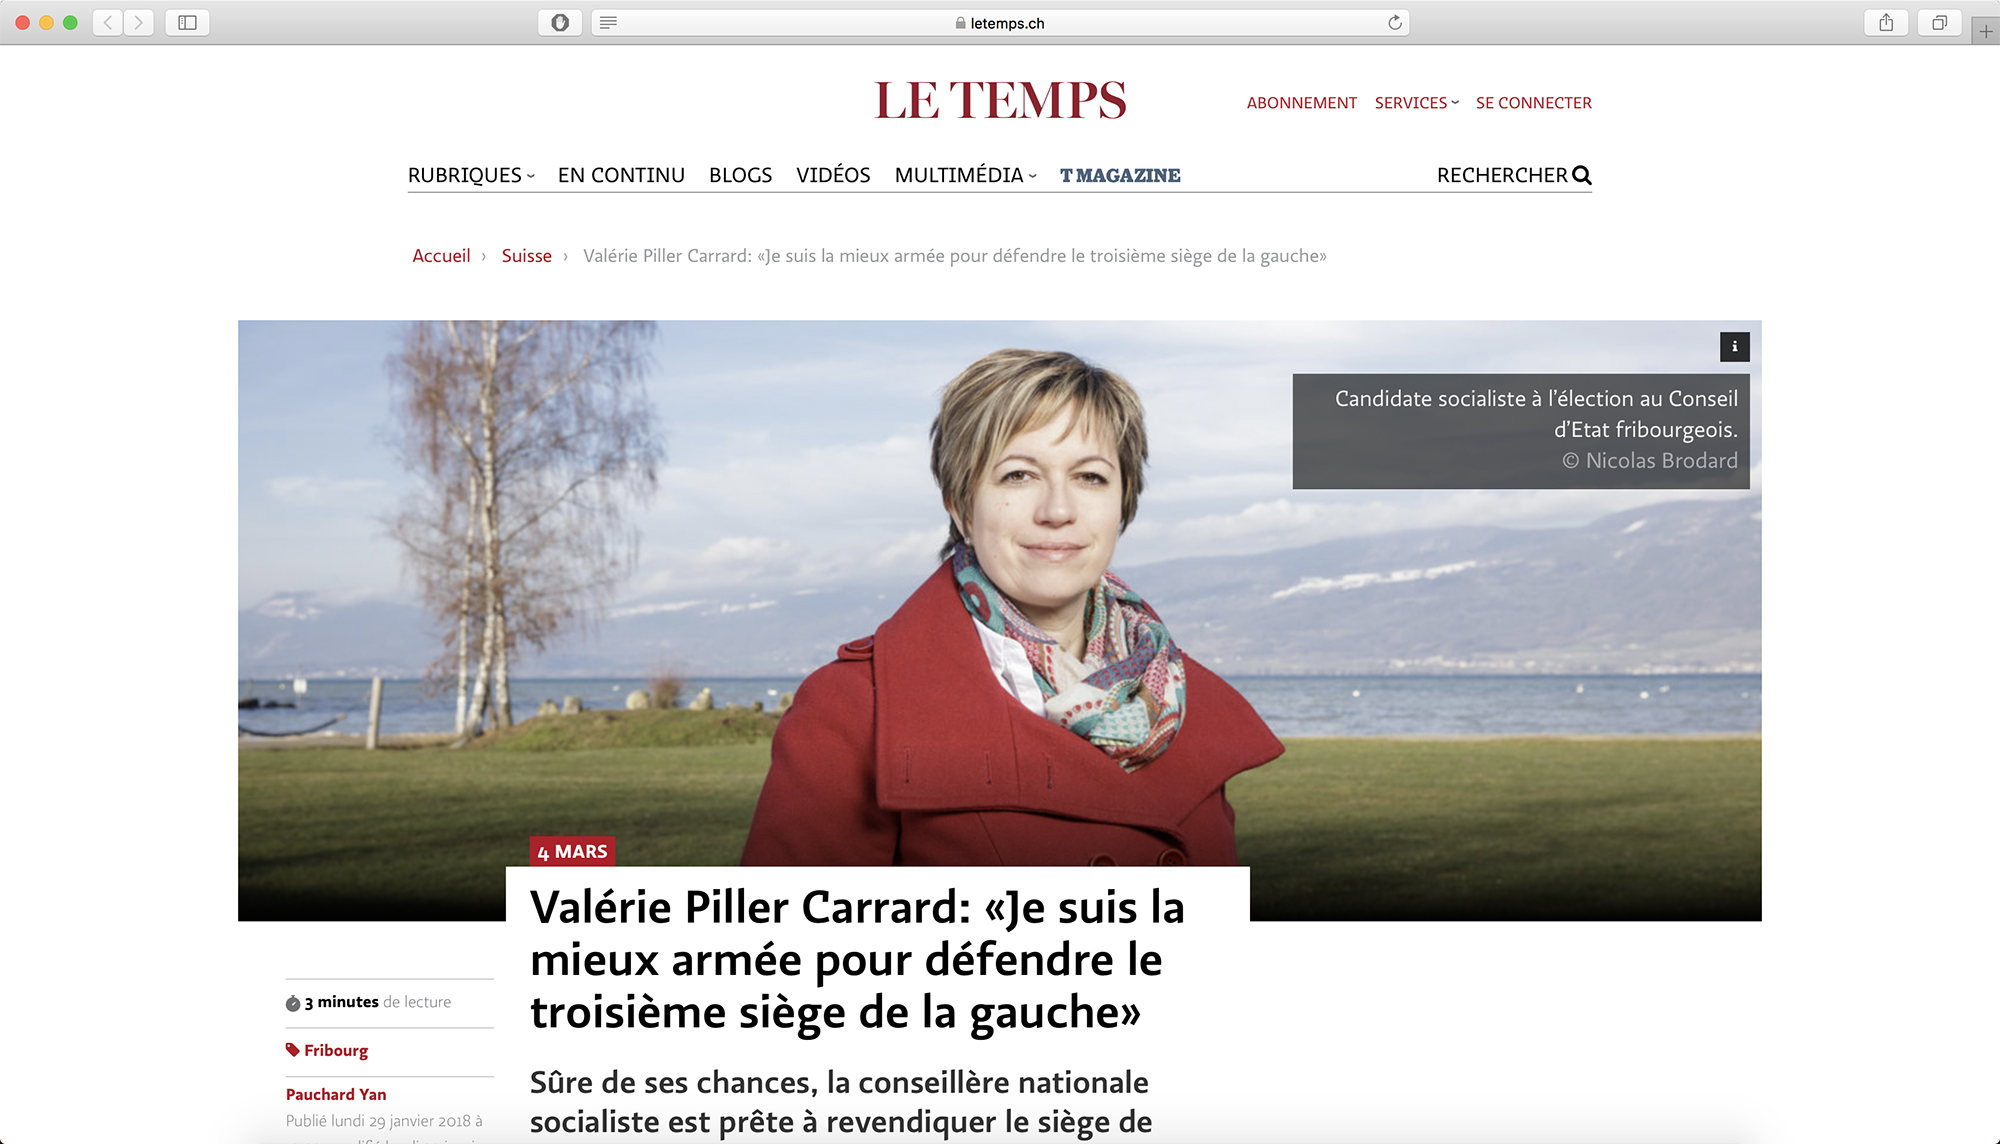 valerie-piller-carrard-le-temps-2018.jpg